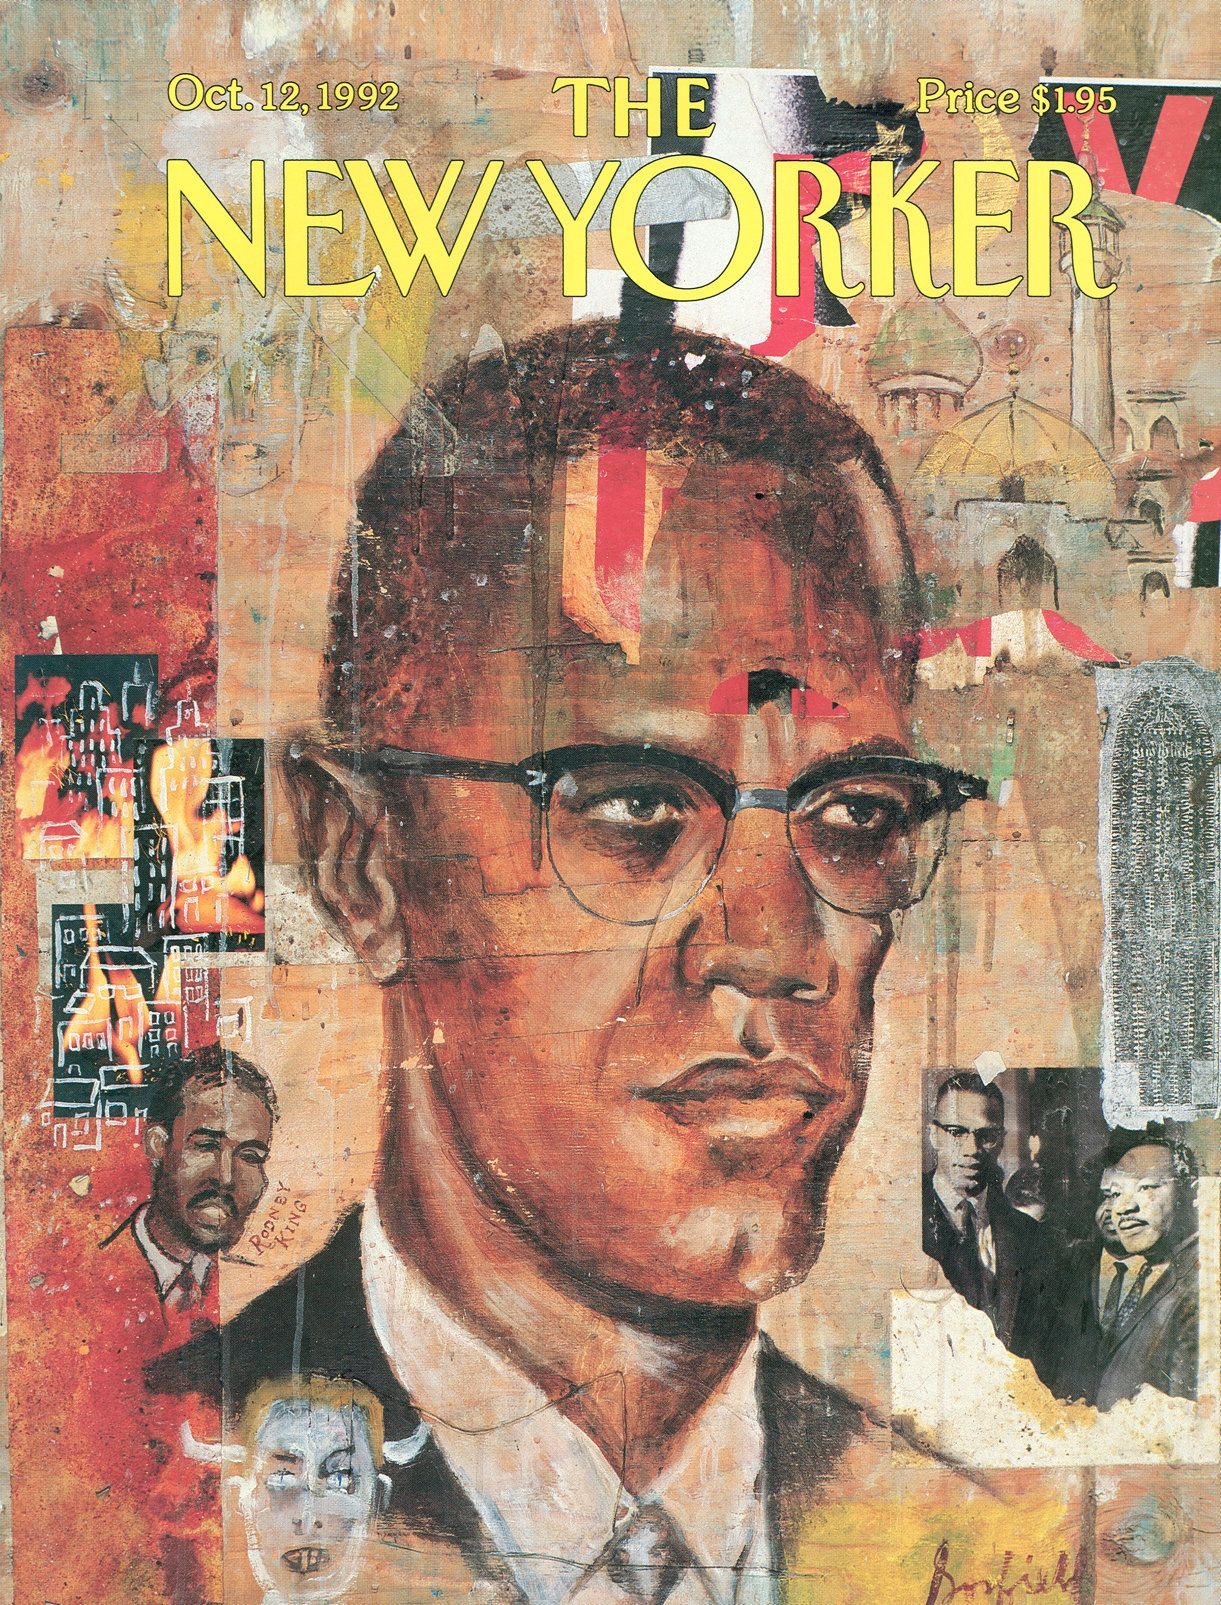 The New Yorker - Monday, October 12, 1992 - Issue # 3530 - Vol. 68 - N° 34 - Cover by : Josh Gosfield